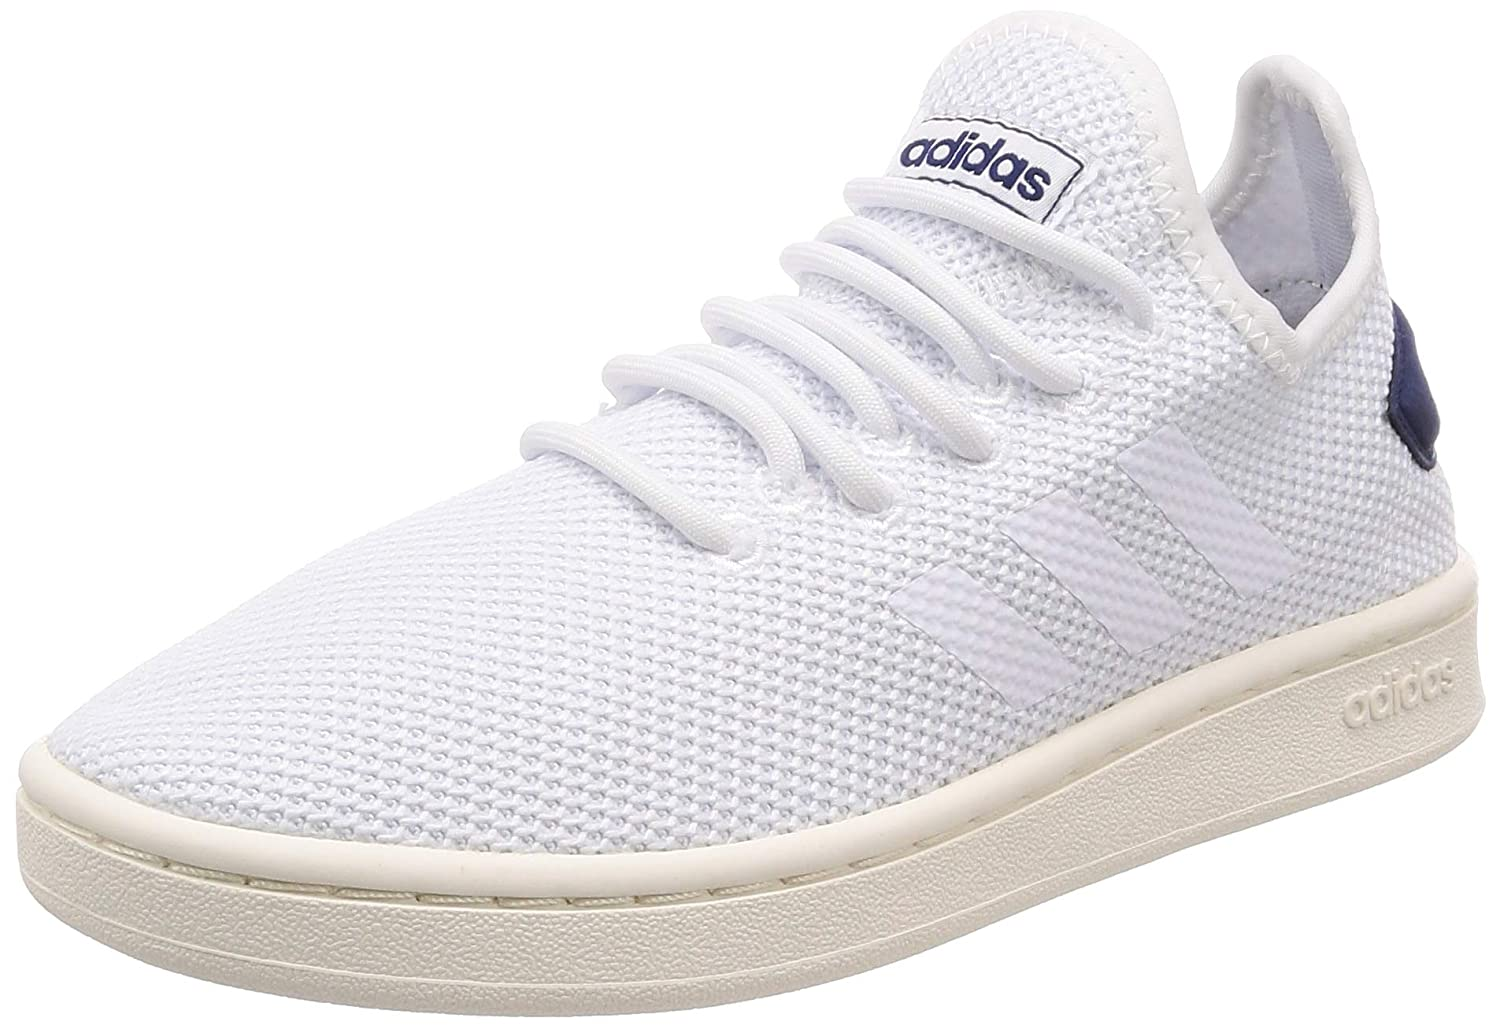 Amazon.com: adidas Court Adapt Trainers - Mens - White/White ...